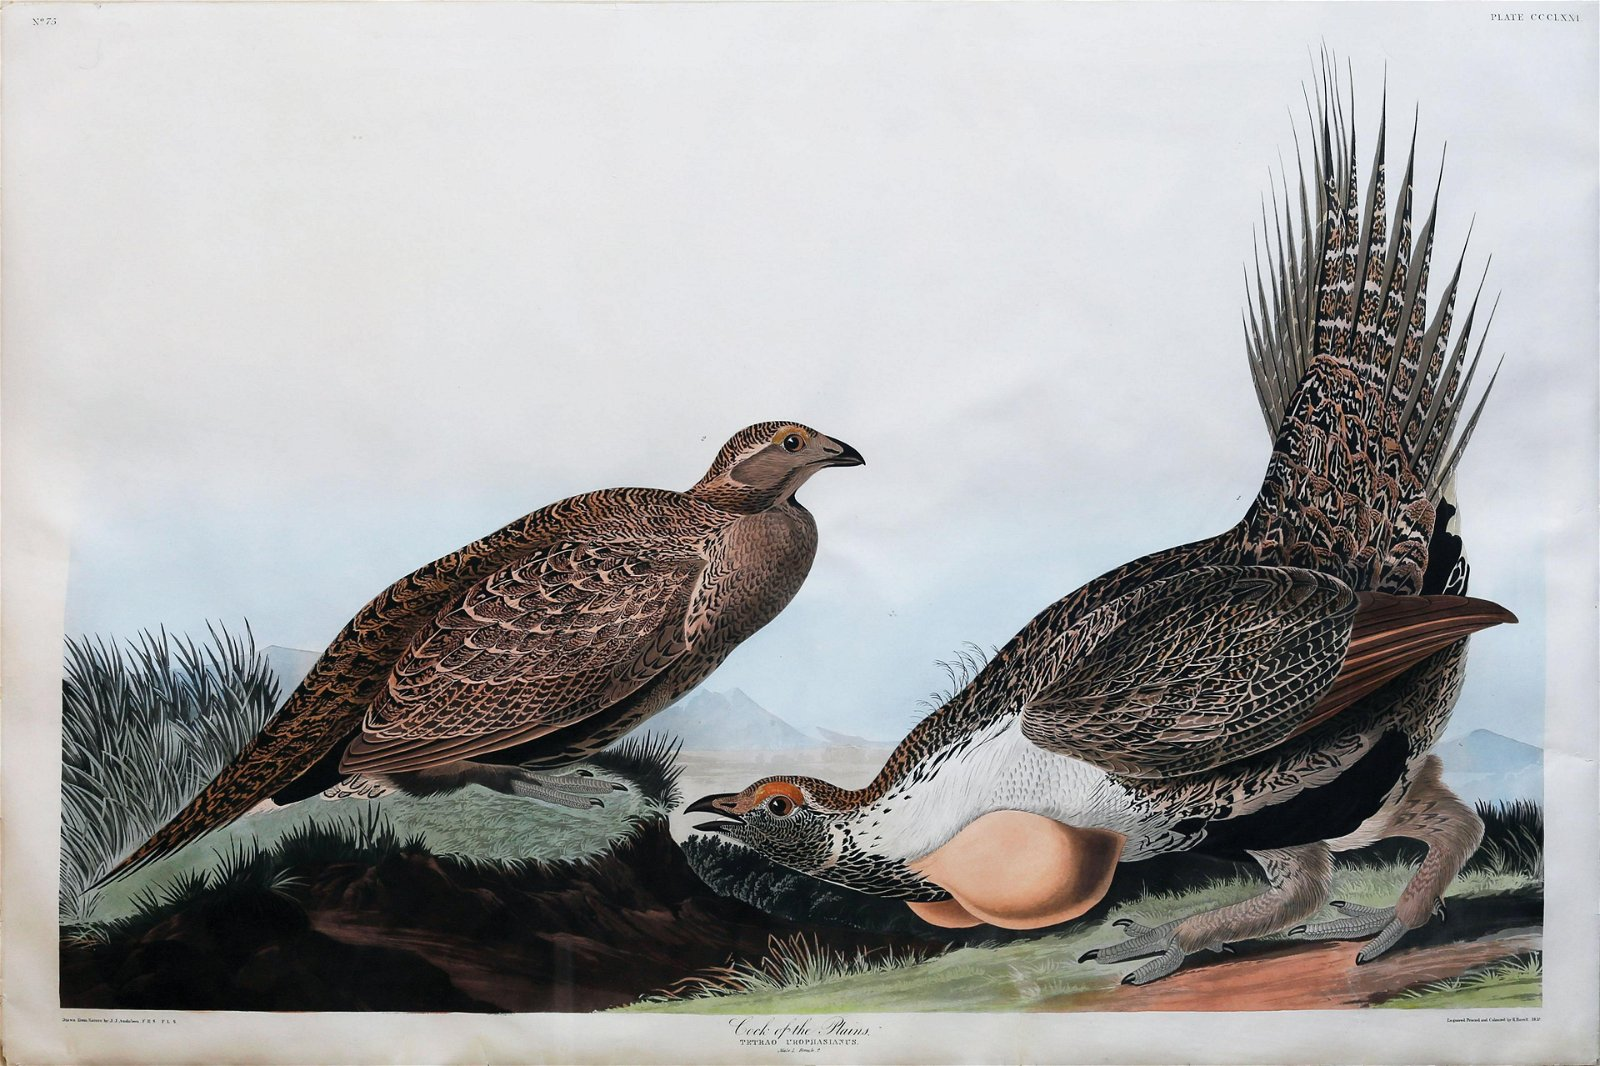 Audubon Aquatint, Cock of the Plains